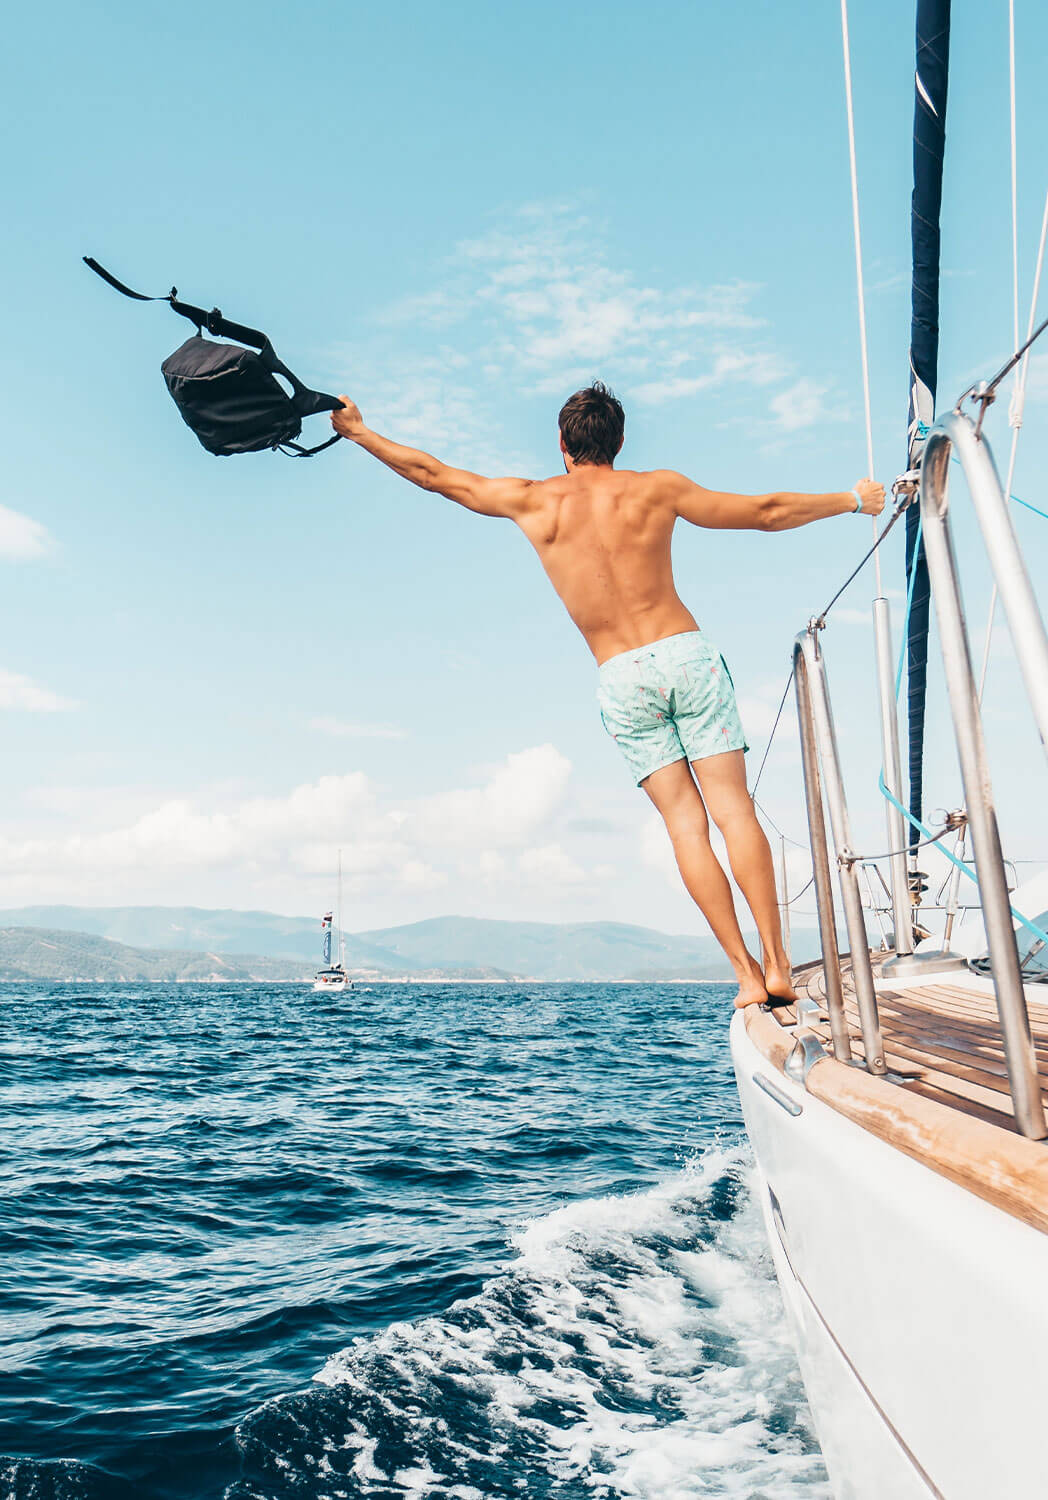 man on a sail boat enjoying life hanging off the side